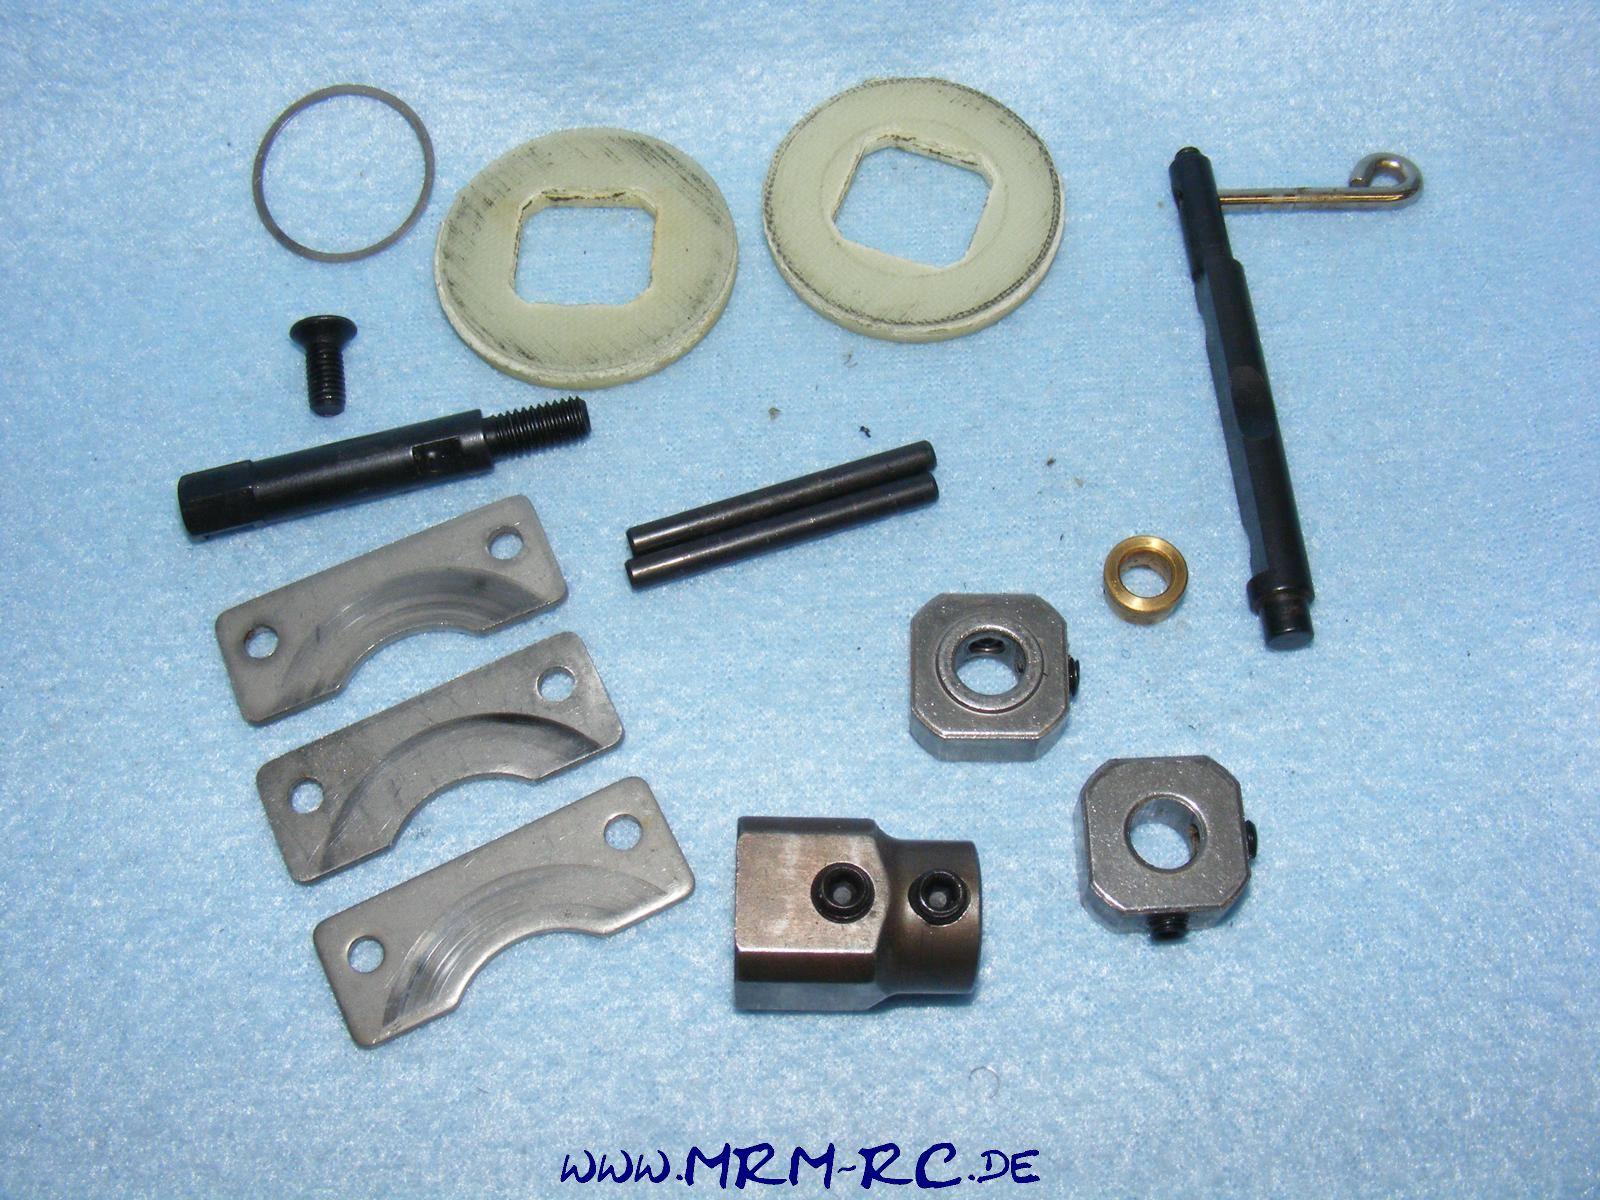 Carson Dirt Attack 500305245 brake set Bremse Bremsenset